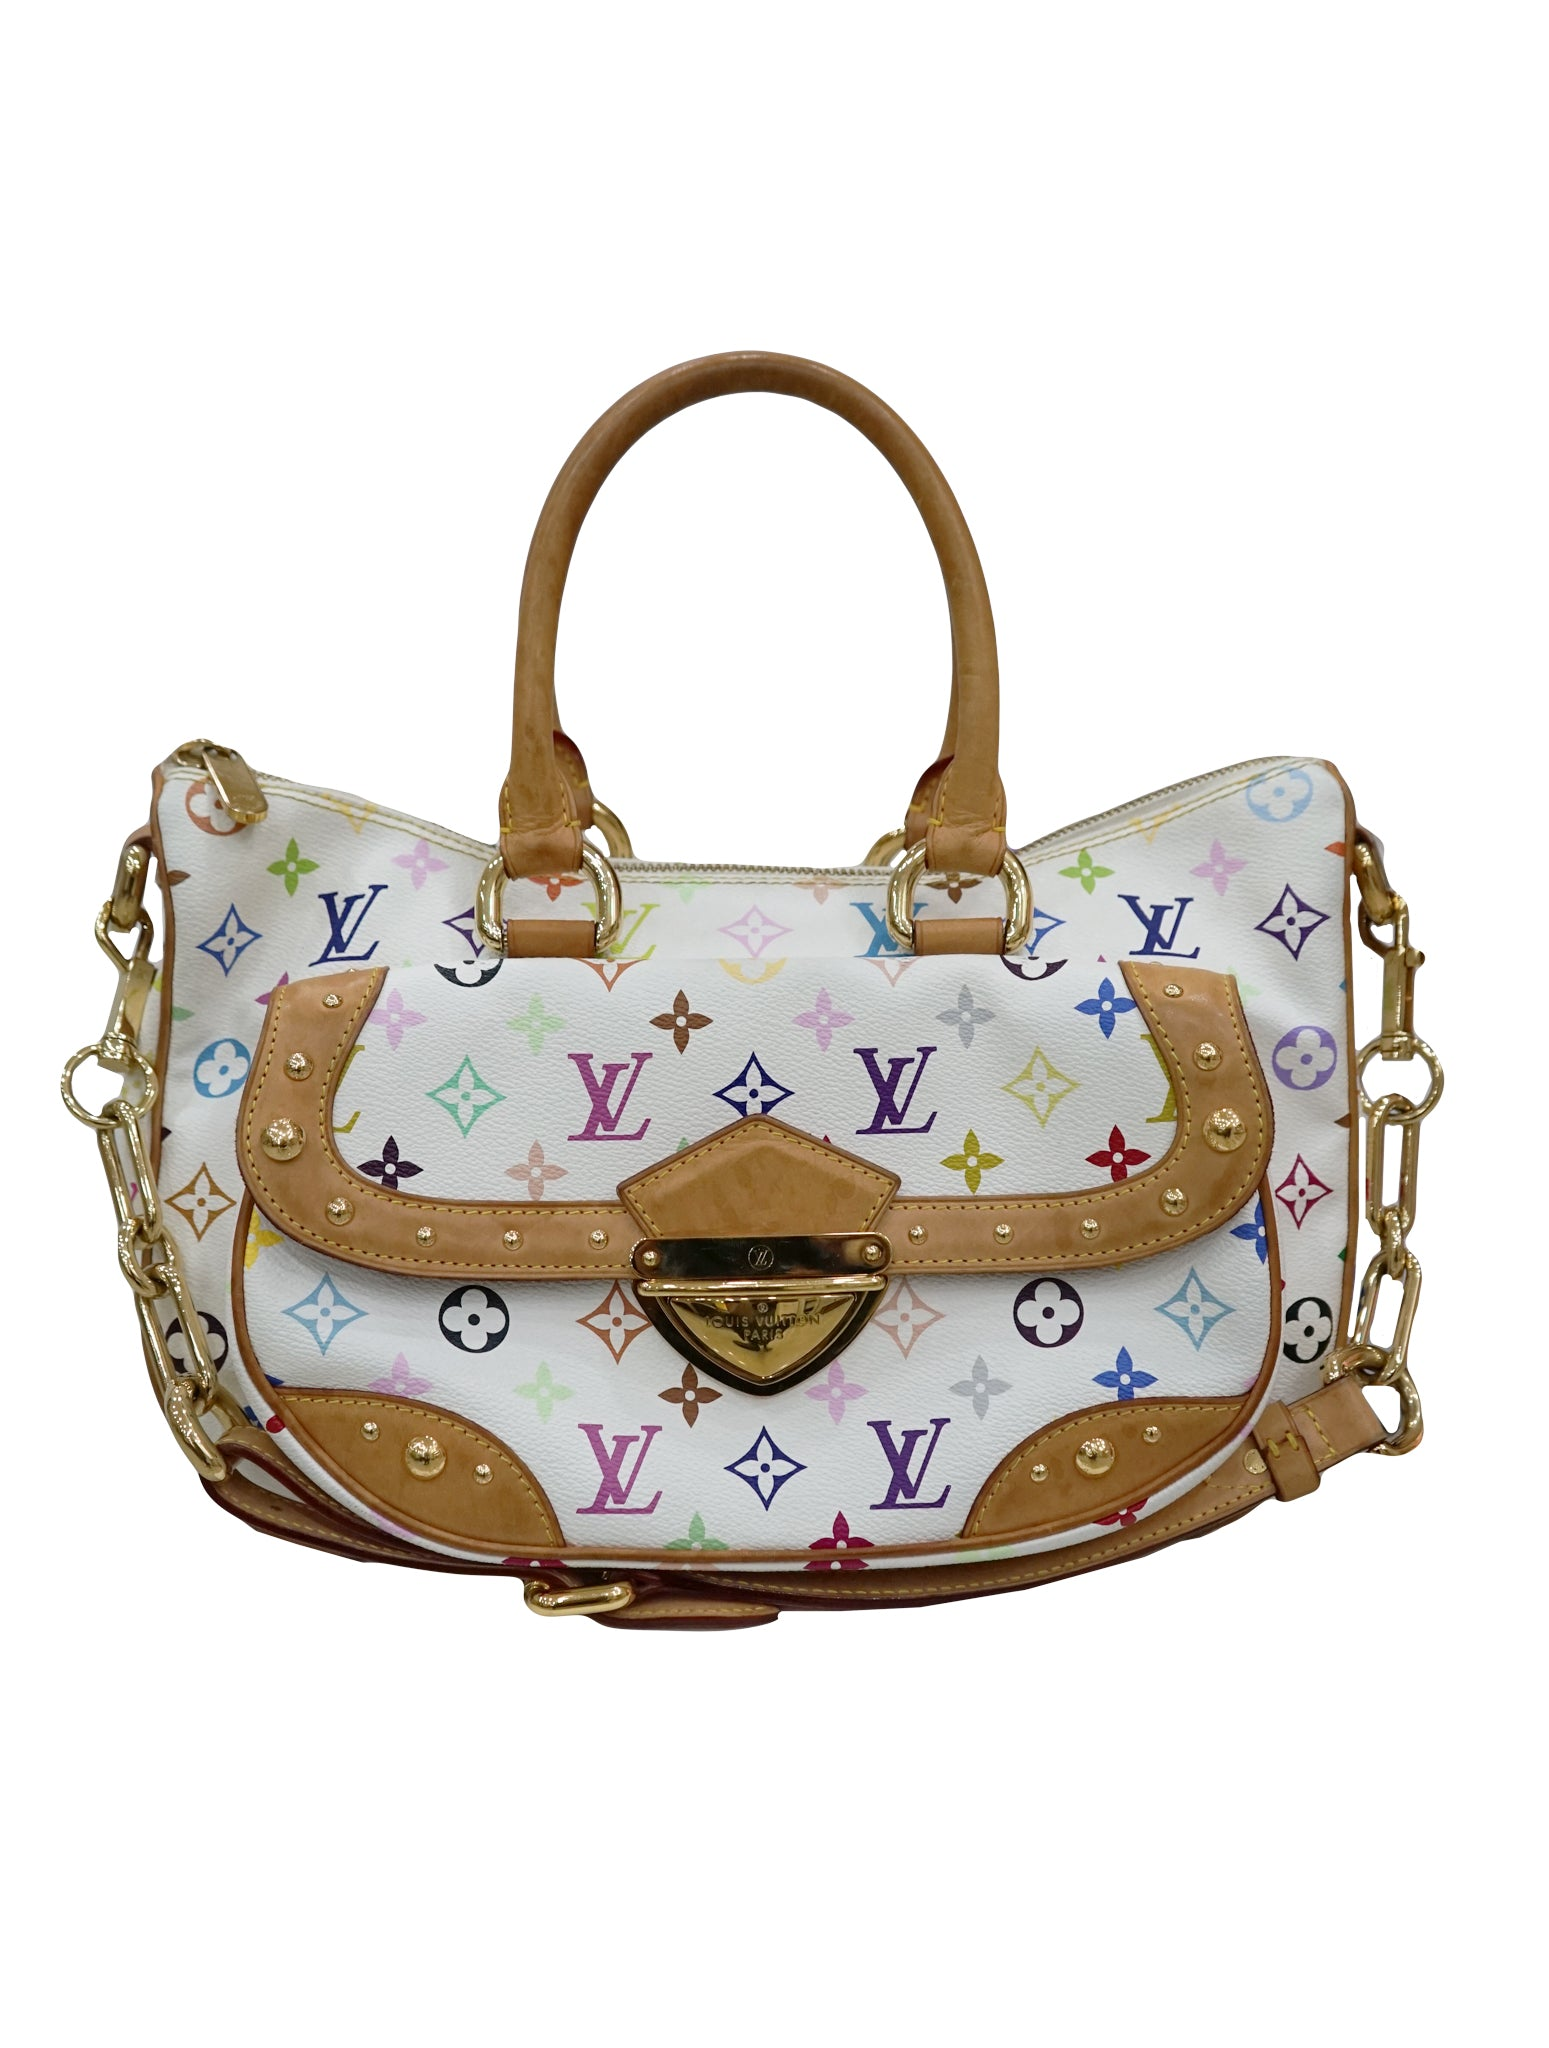 WHITE MULTICOLORED MONOGRAM RITA BAG